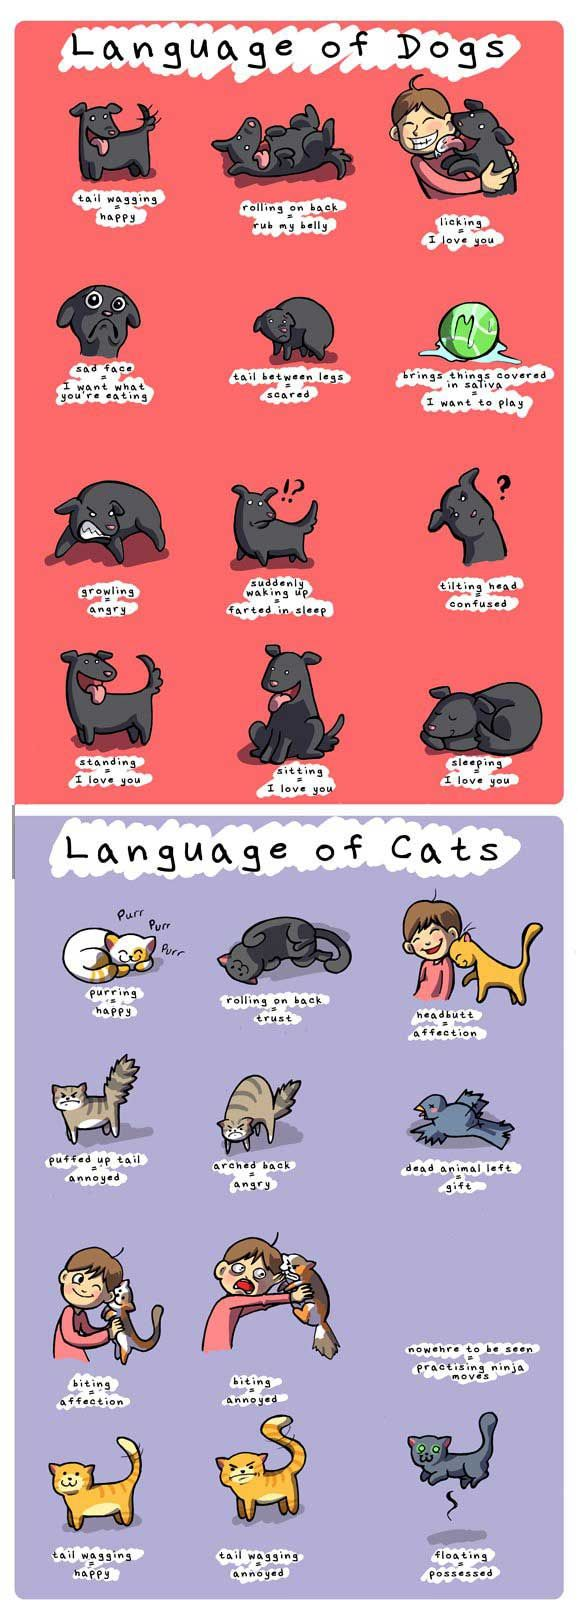 true.: Helpful Guide, Animals, Dogs And Cats, Pet, Dog Cat, Funny, Cats And Dogs, Language